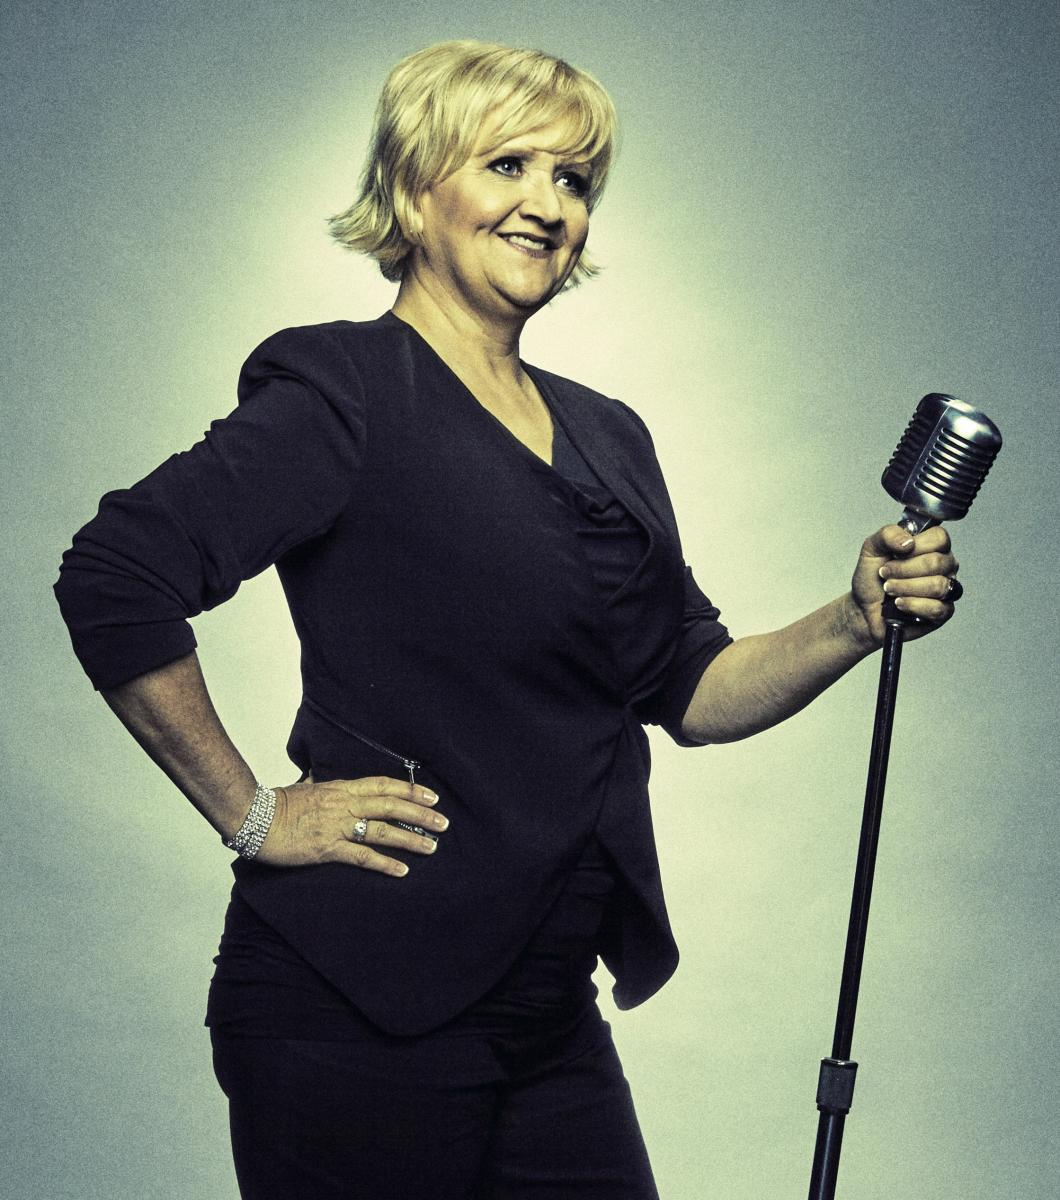 Chonda Pierce Schedule 2020 With Treatment Comes Triumph: Chonda Pierce | Anxiety and